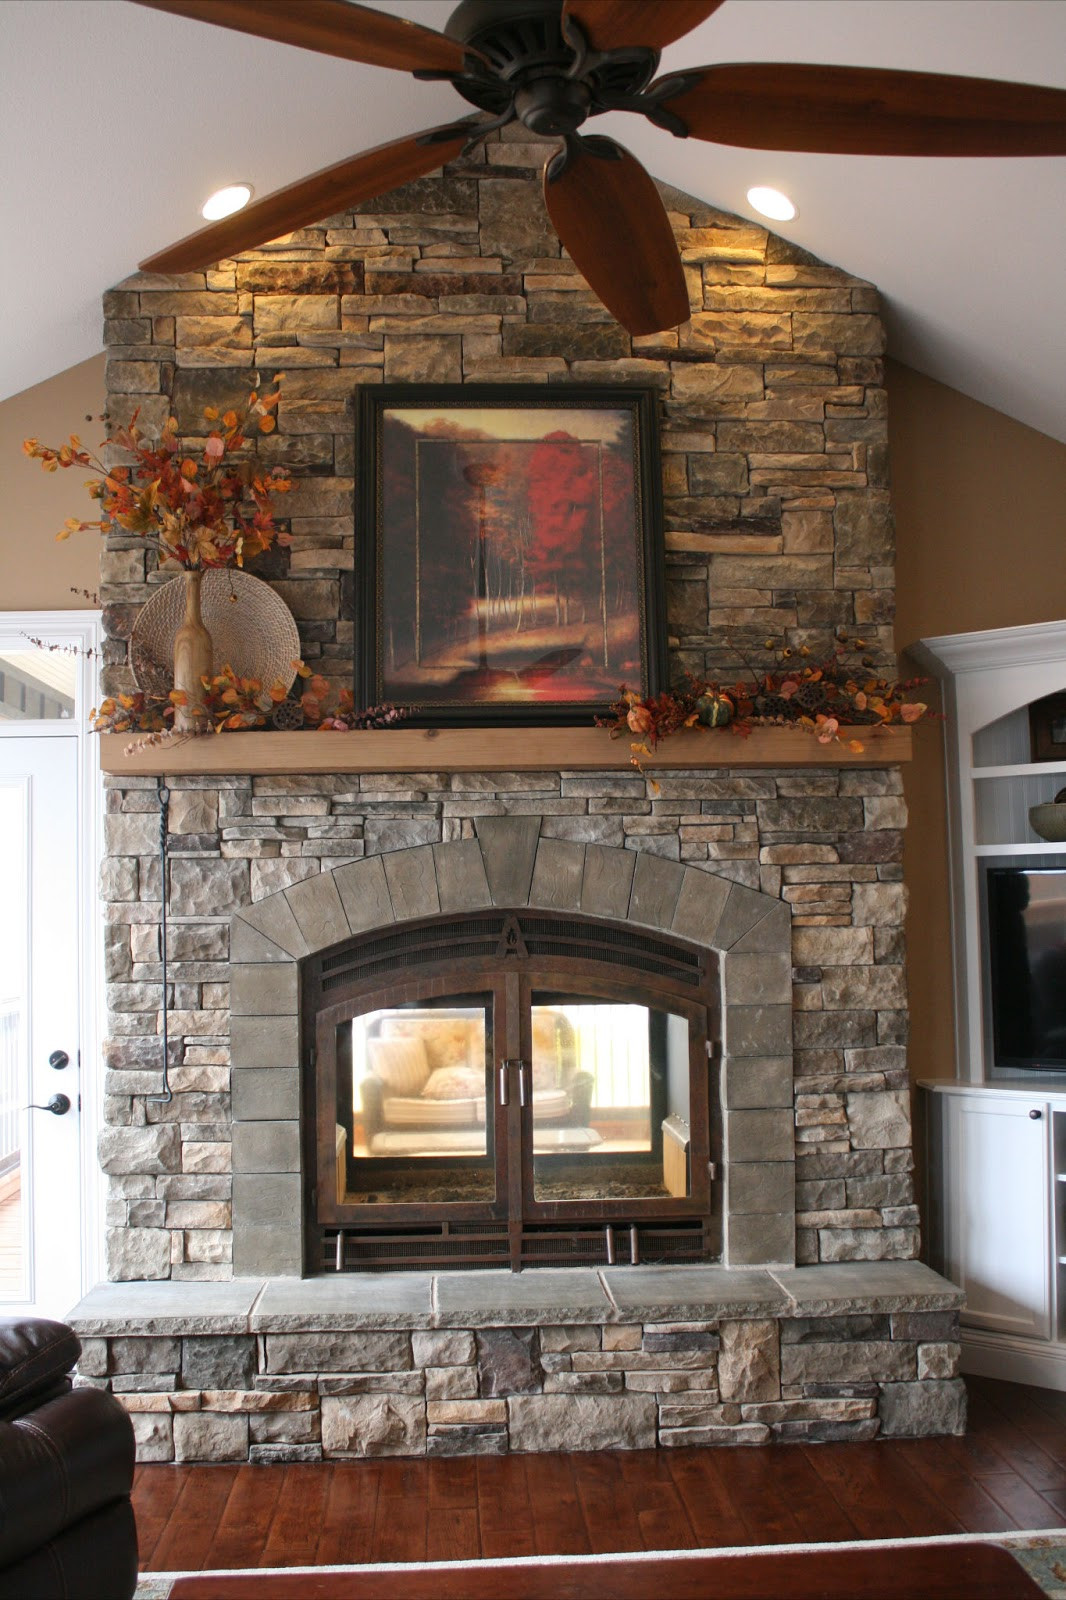 Best ideas about Wood For Fireplace . Save or Pin Acucraft Fireplaces Standard Wood Burning Fireplace Models Now.